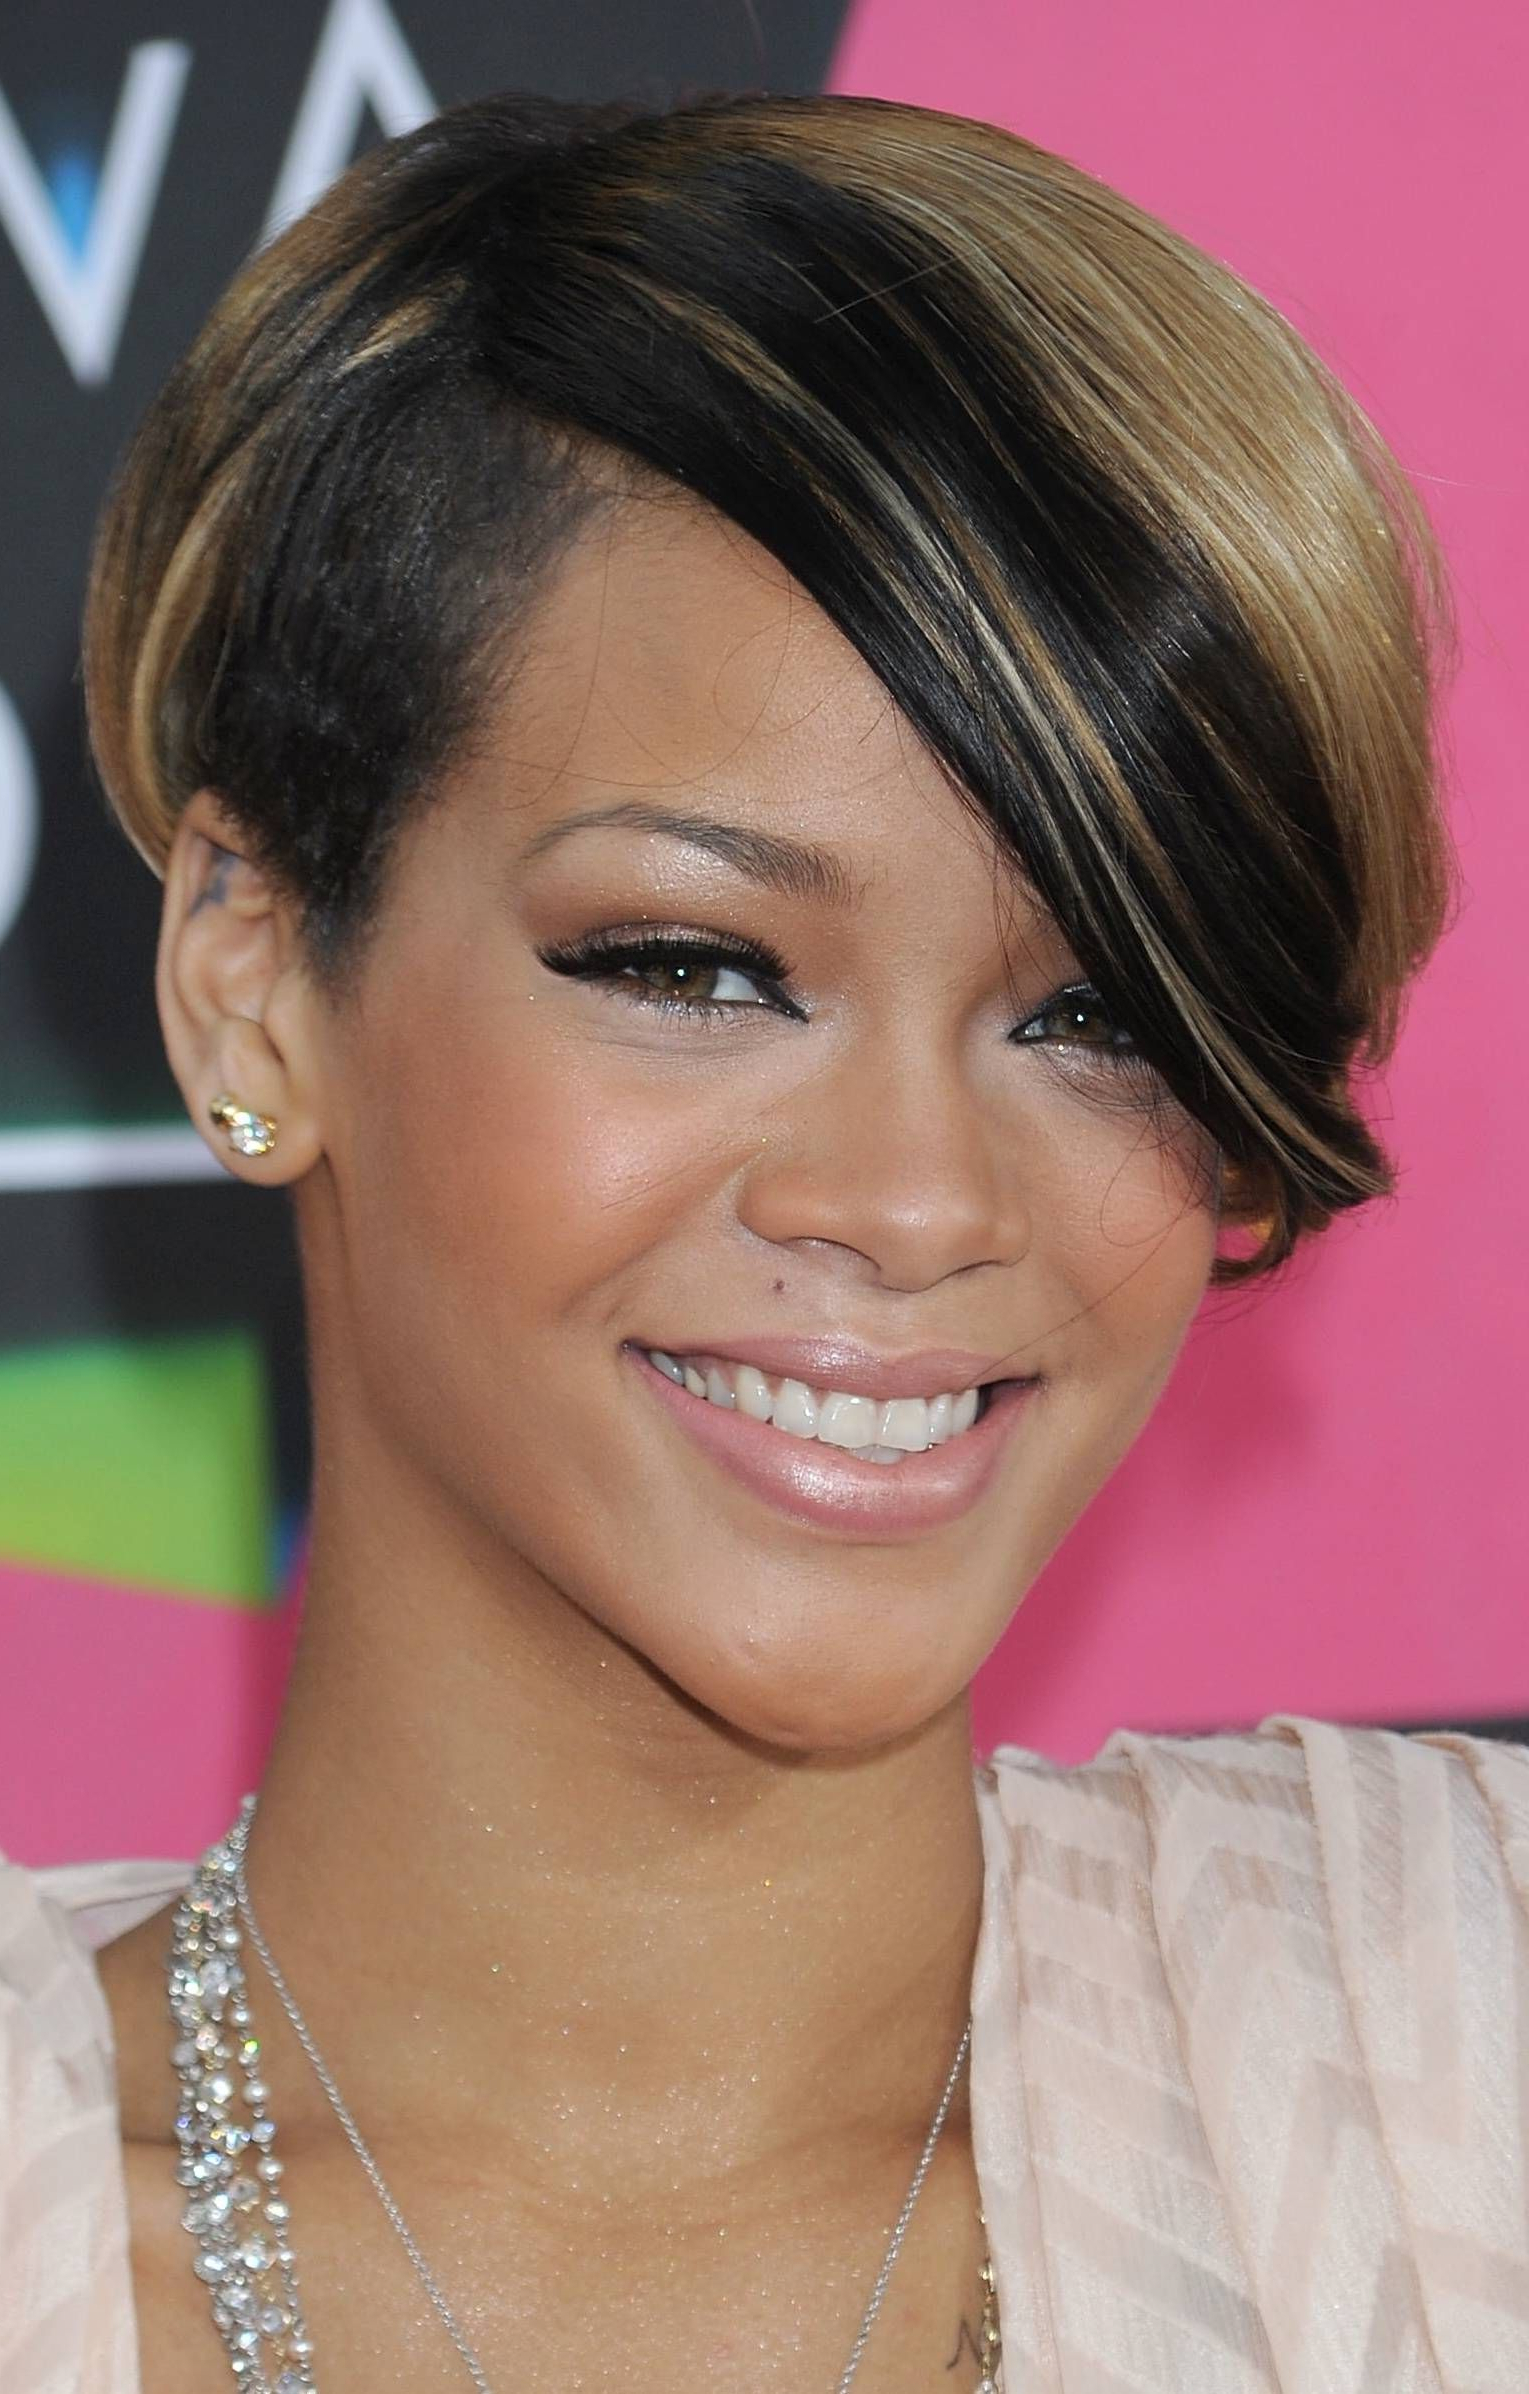 Gorgeous Short, Black Hairstyles | Hair | Pinterest | Hair Styles Intended For Black Short Haircuts For Round Faces (View 2 of 25)